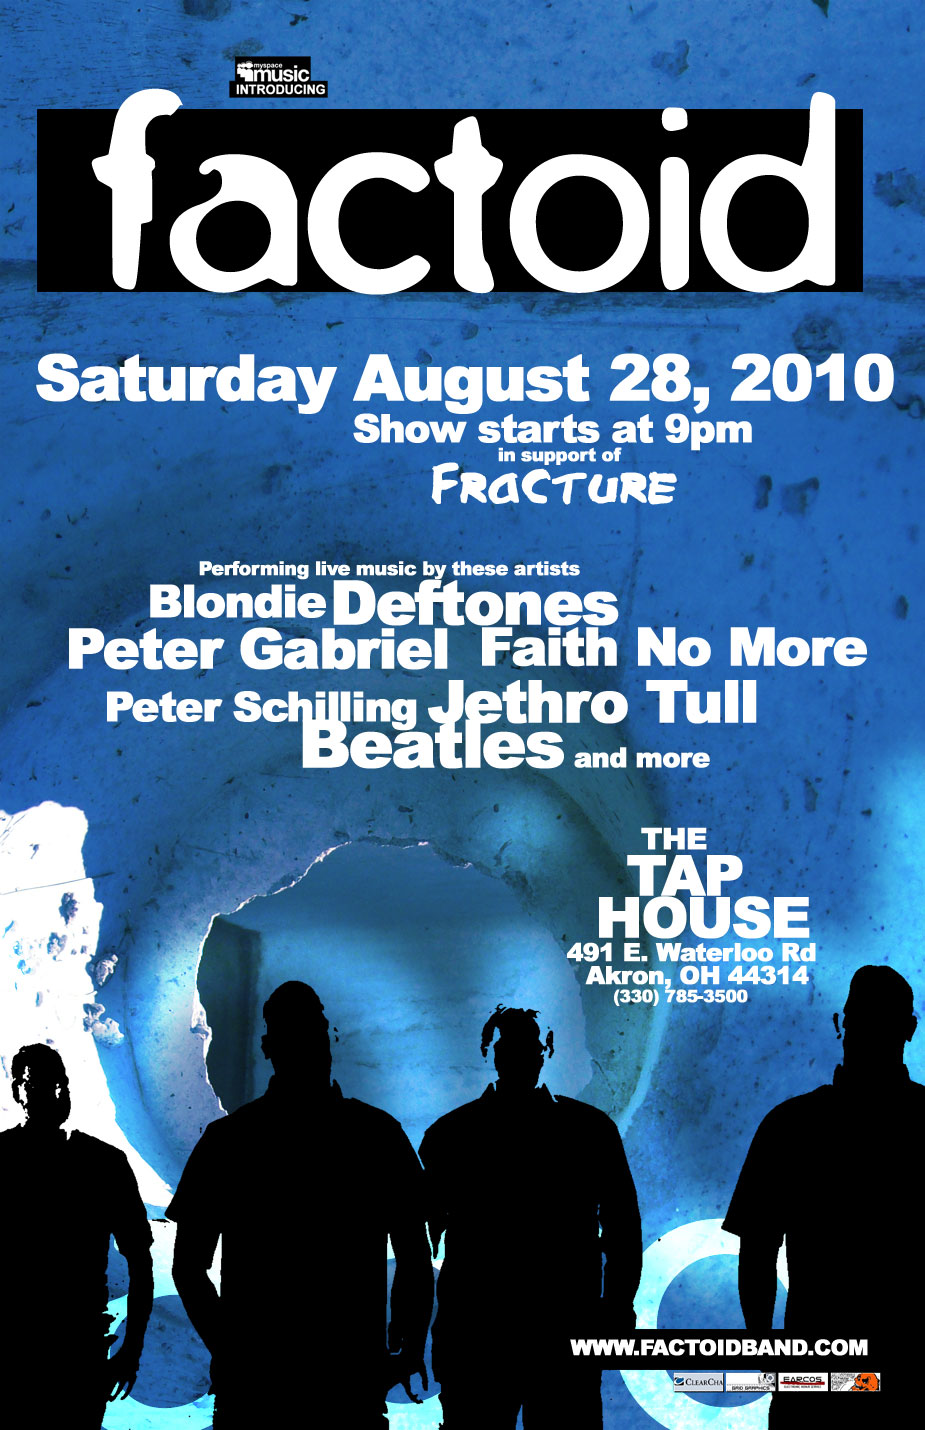 factoid_poster_tap_house_5